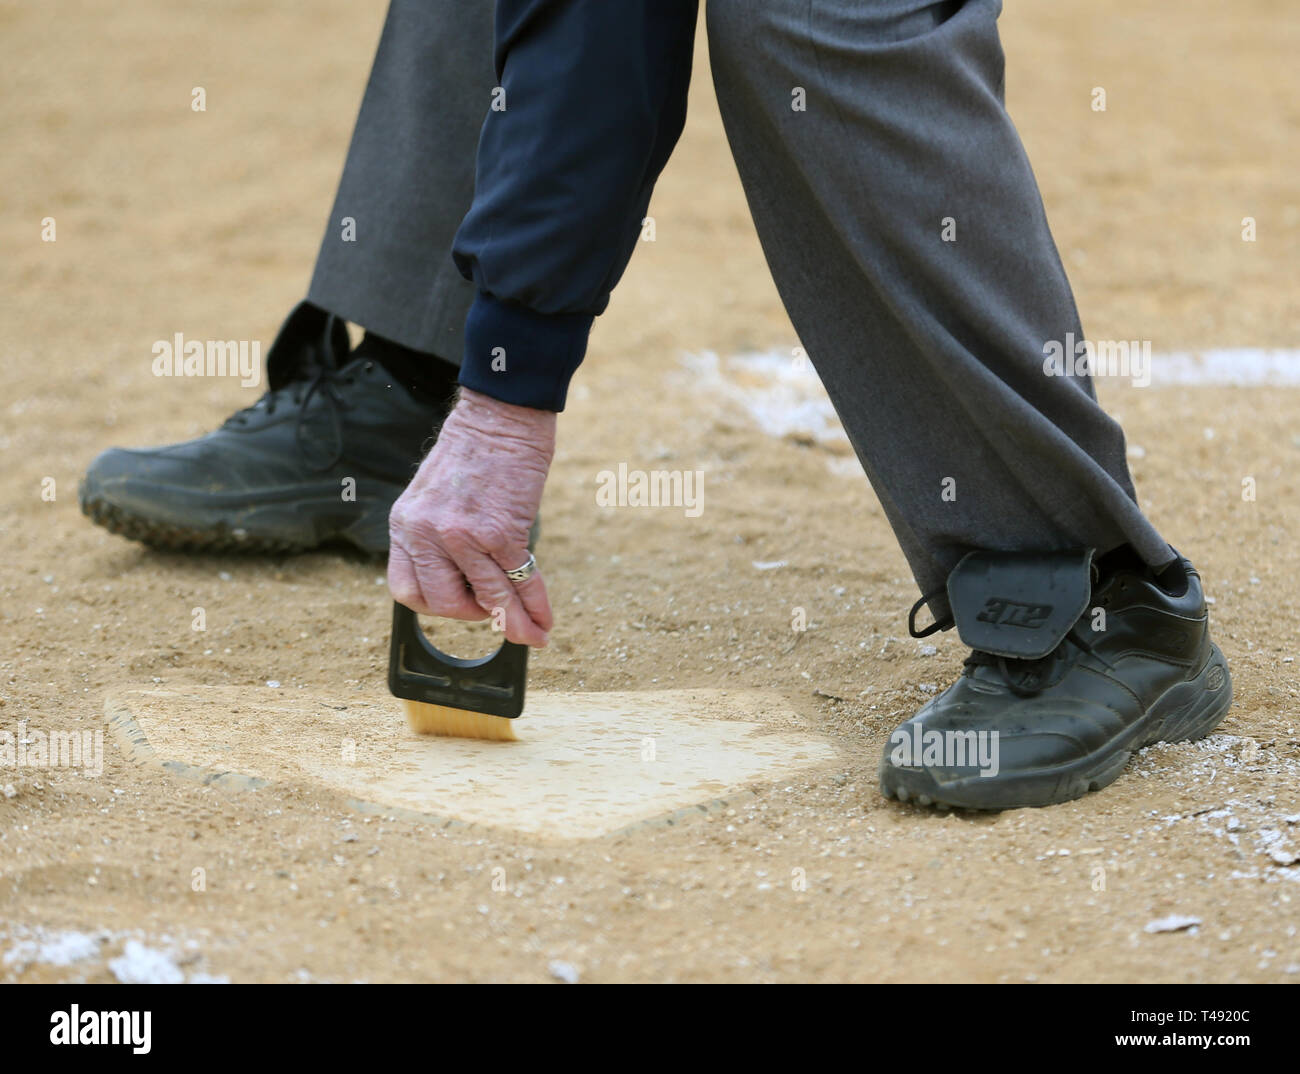 Umpire cleaning home plate at a baseball game Stock Photo